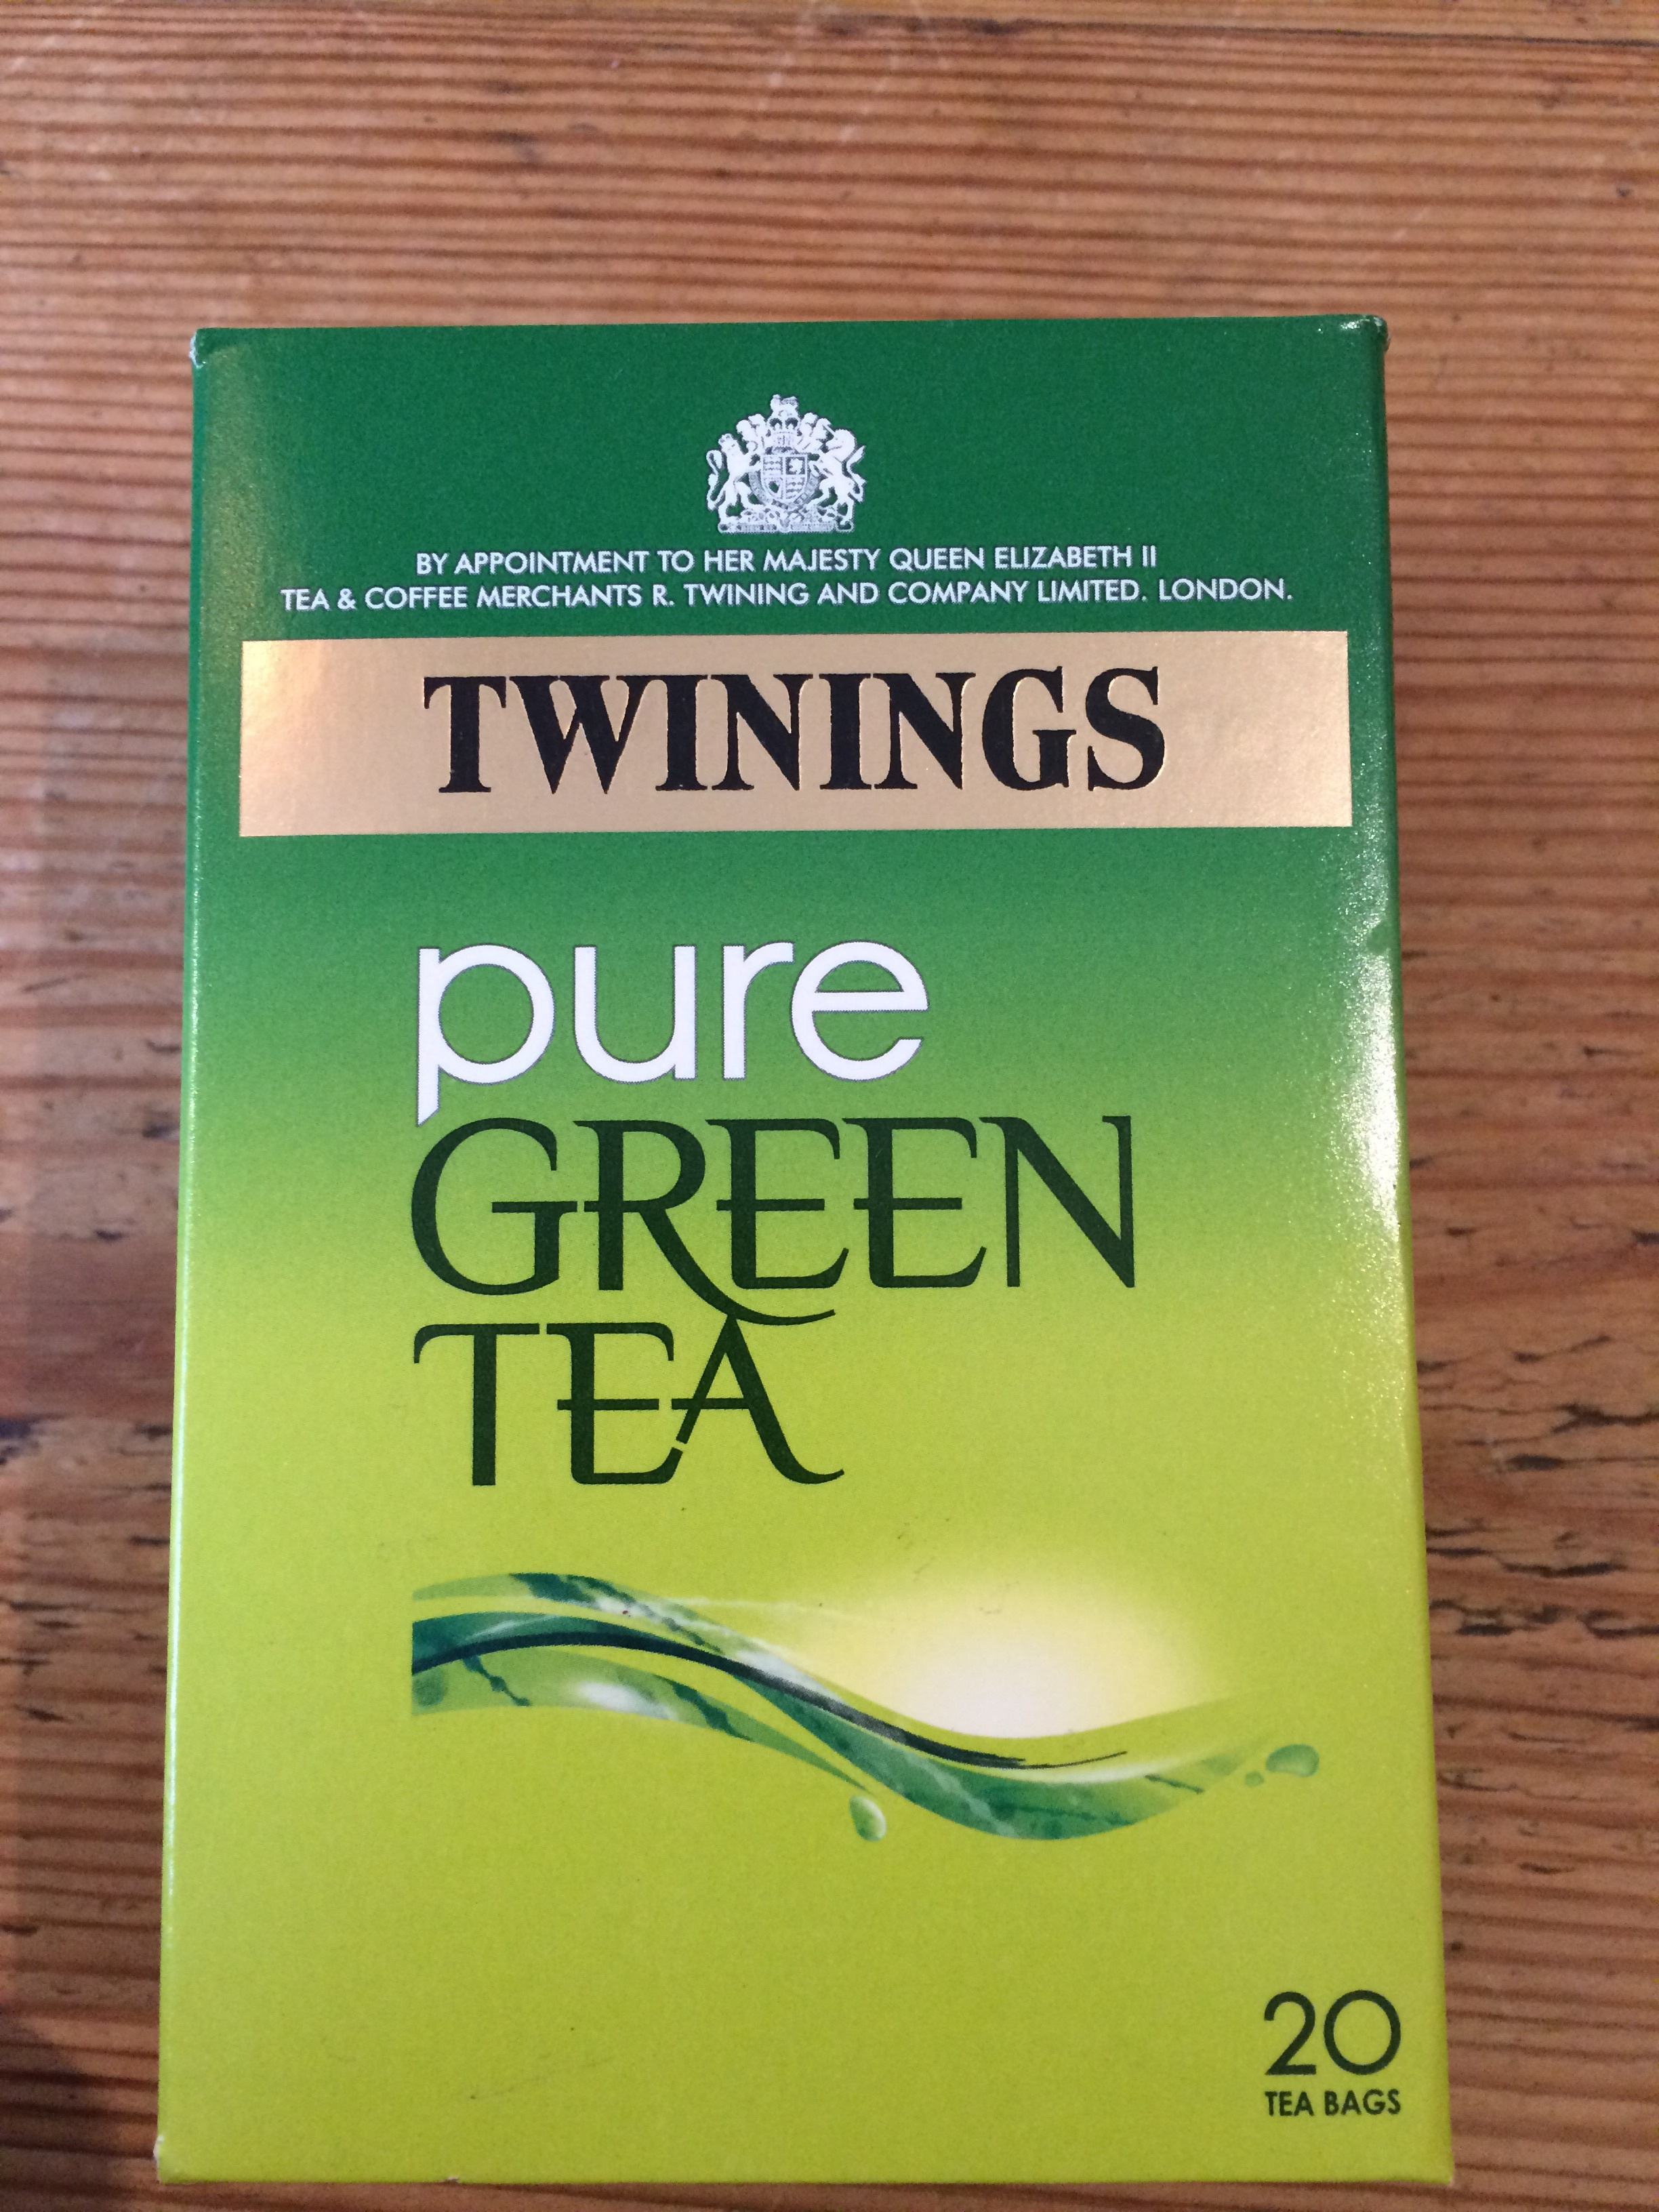 Unopened box of green tea